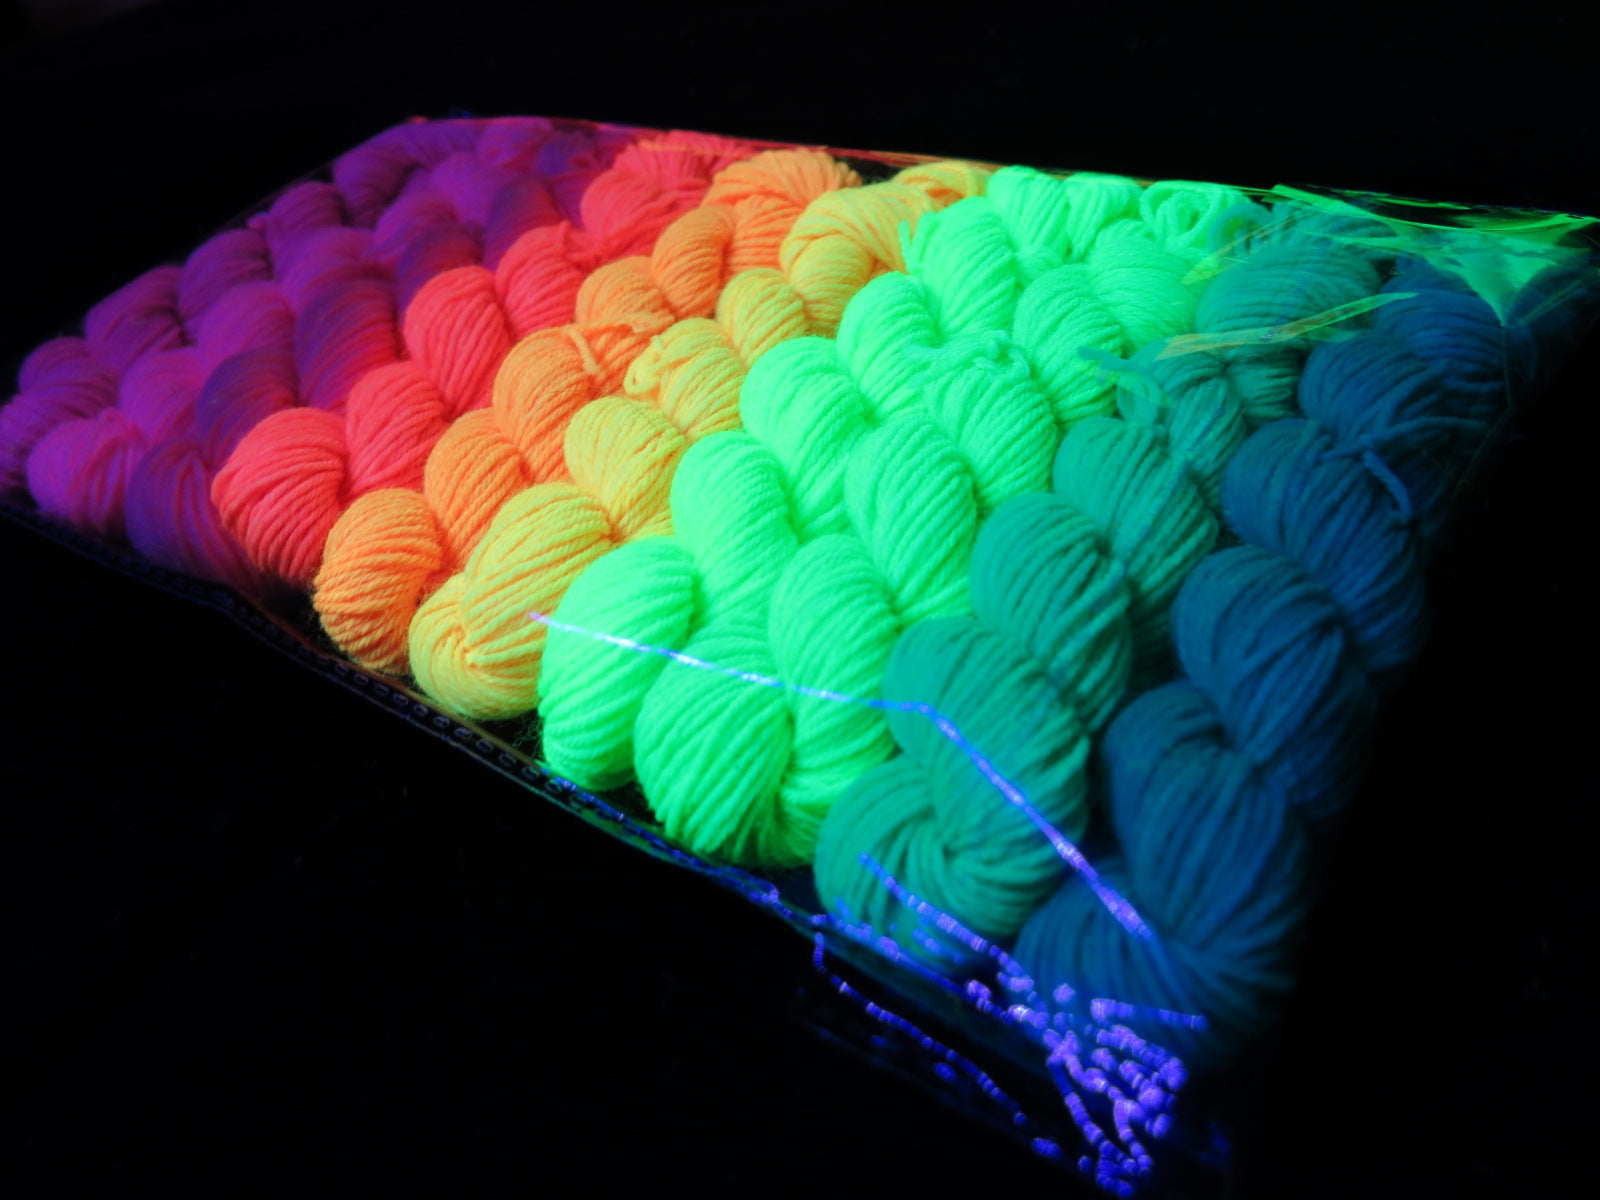 hand dyed uv reactive yarn mini skiens fluorescing under black light